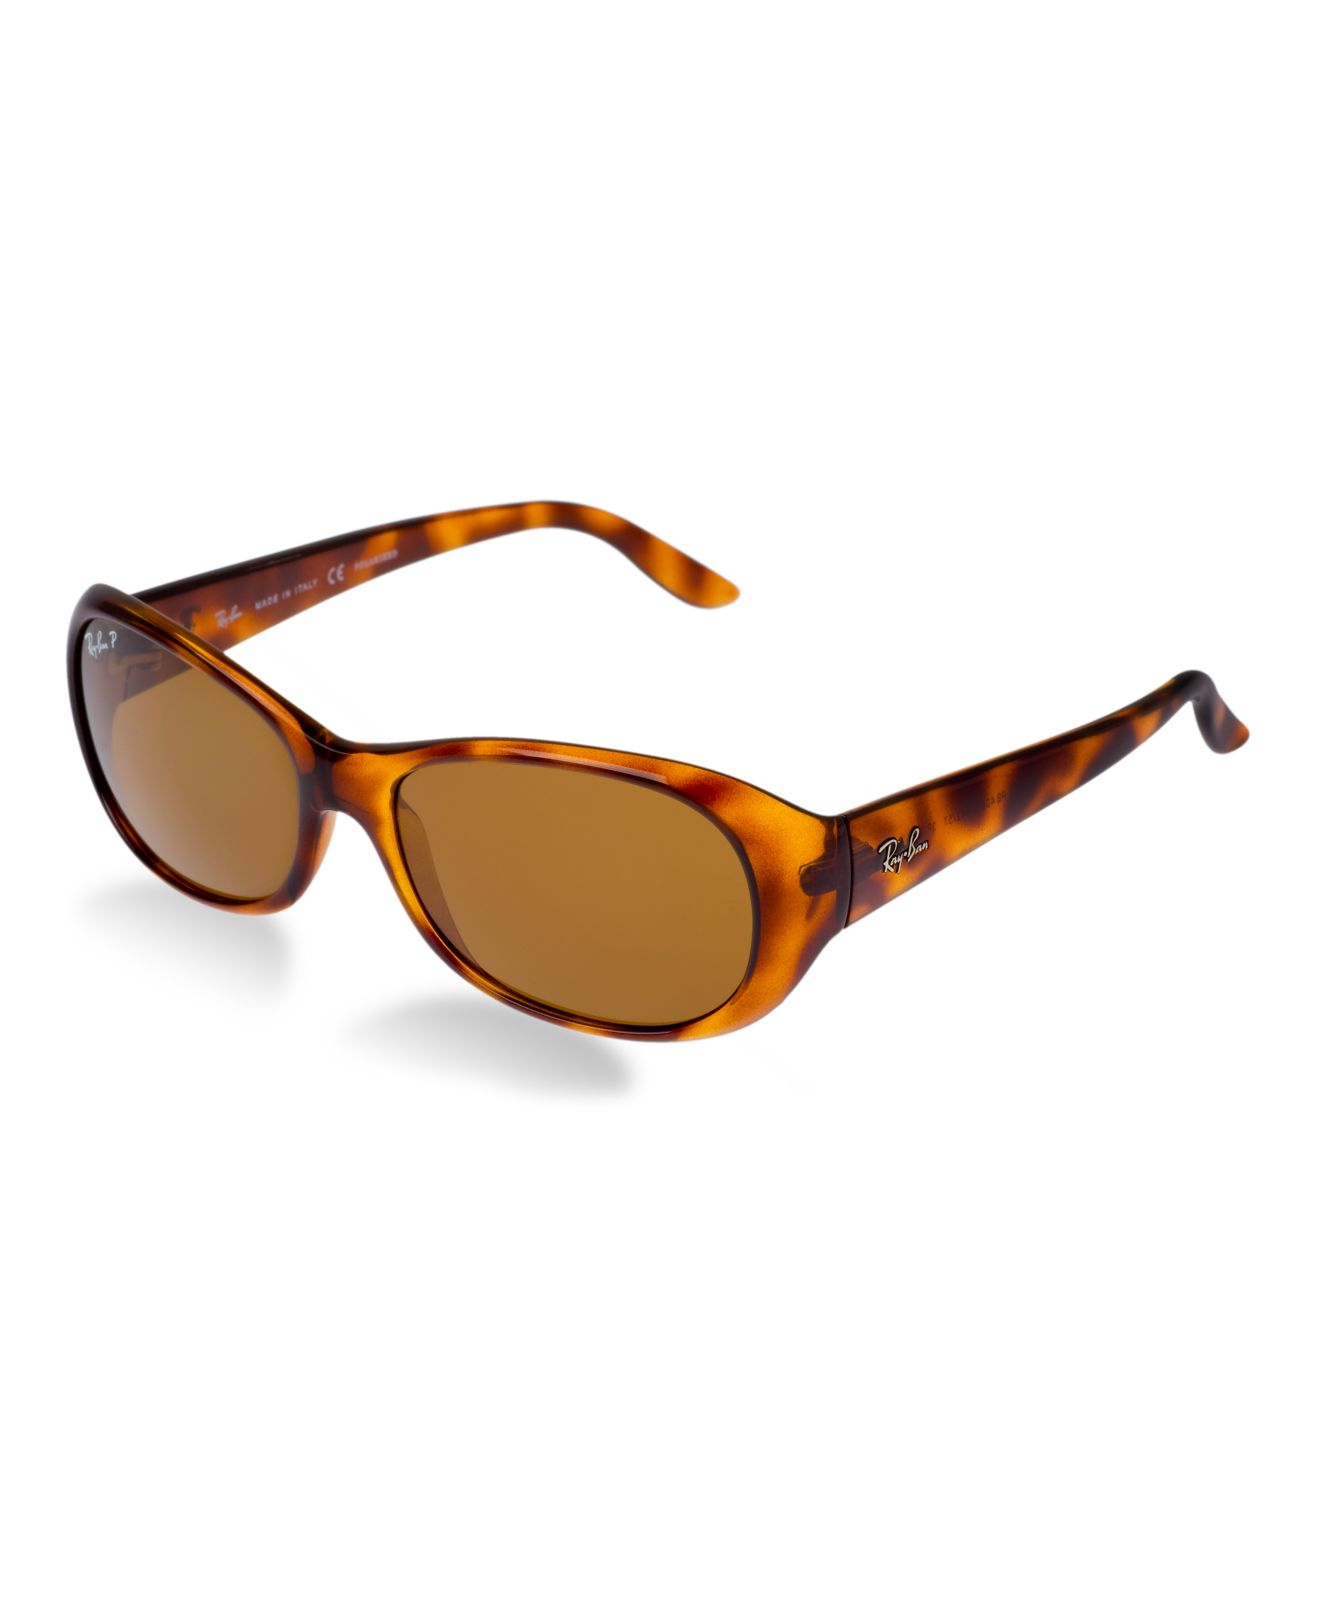 ladies ray ban sunglasses 2017